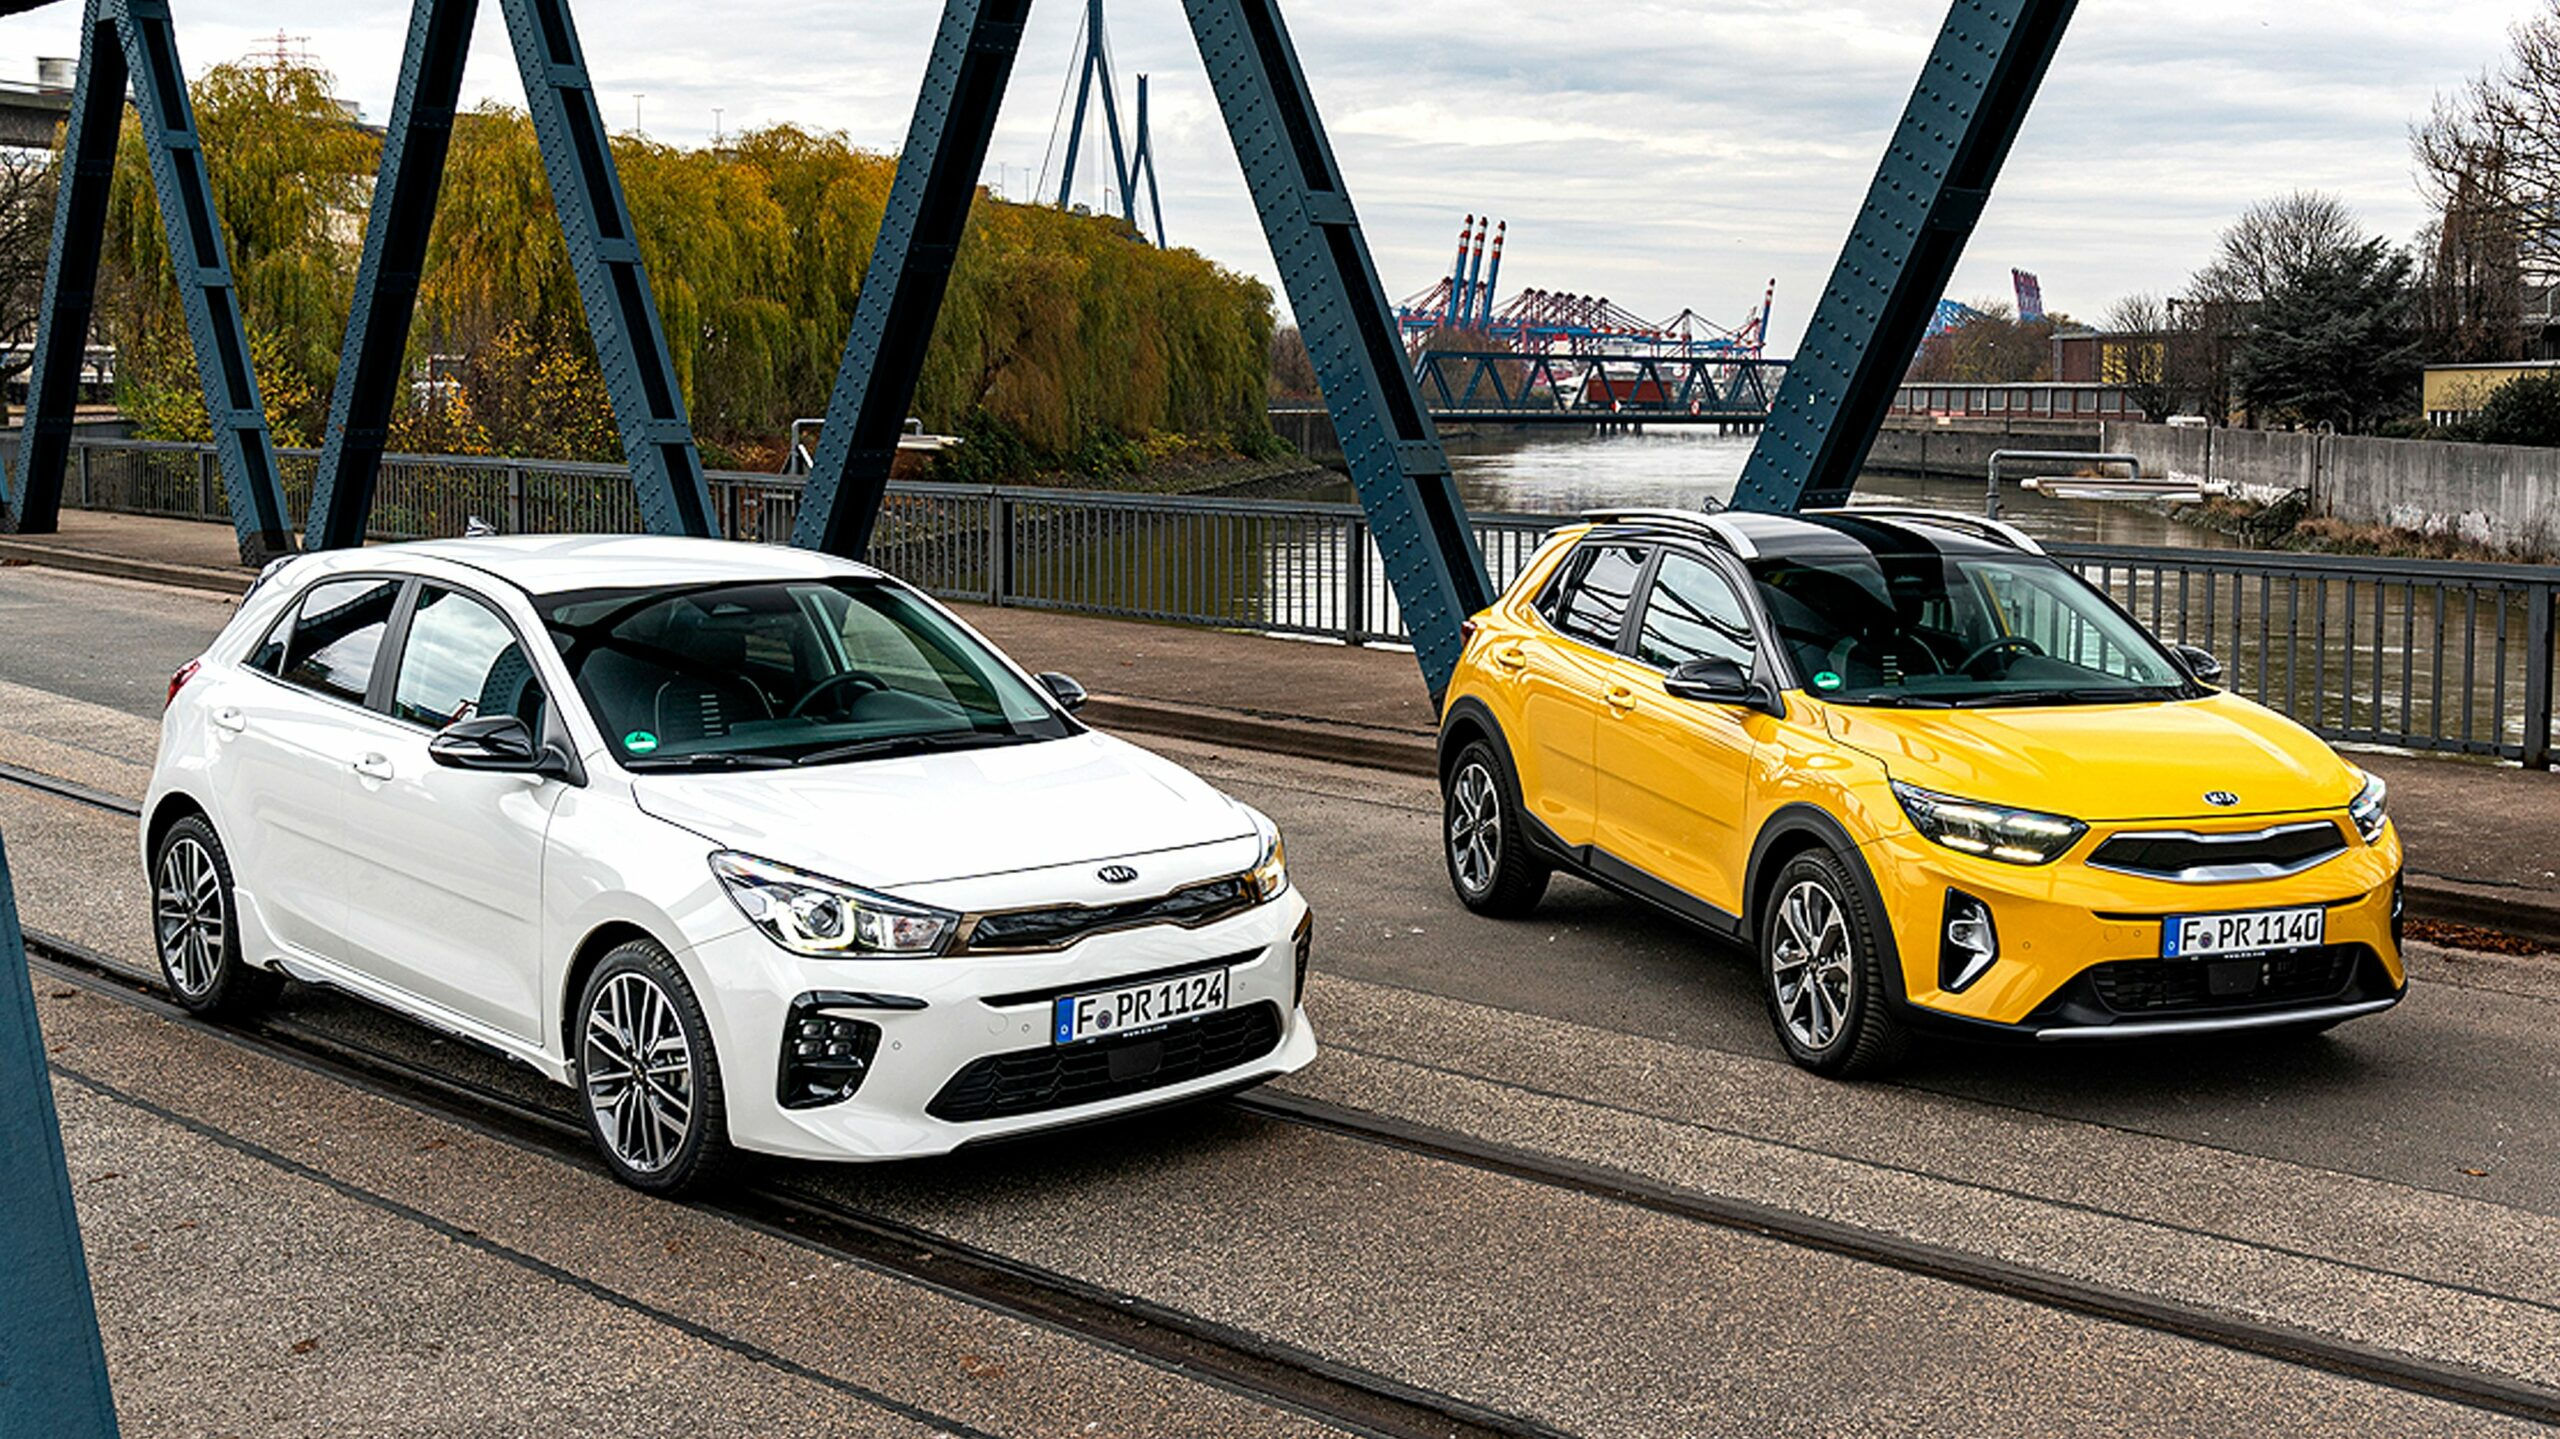 kia rio vs toyota yaris 2021 Rumors